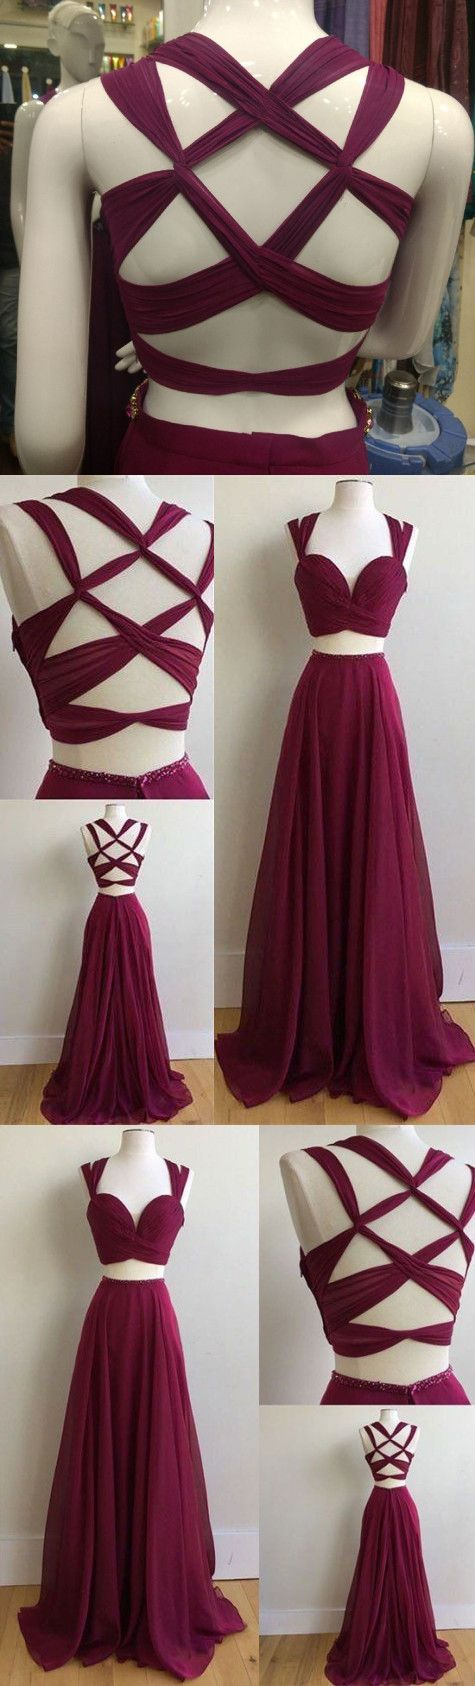 Gorgeous pieces prom dresses long sexy evening gowns chiffon two